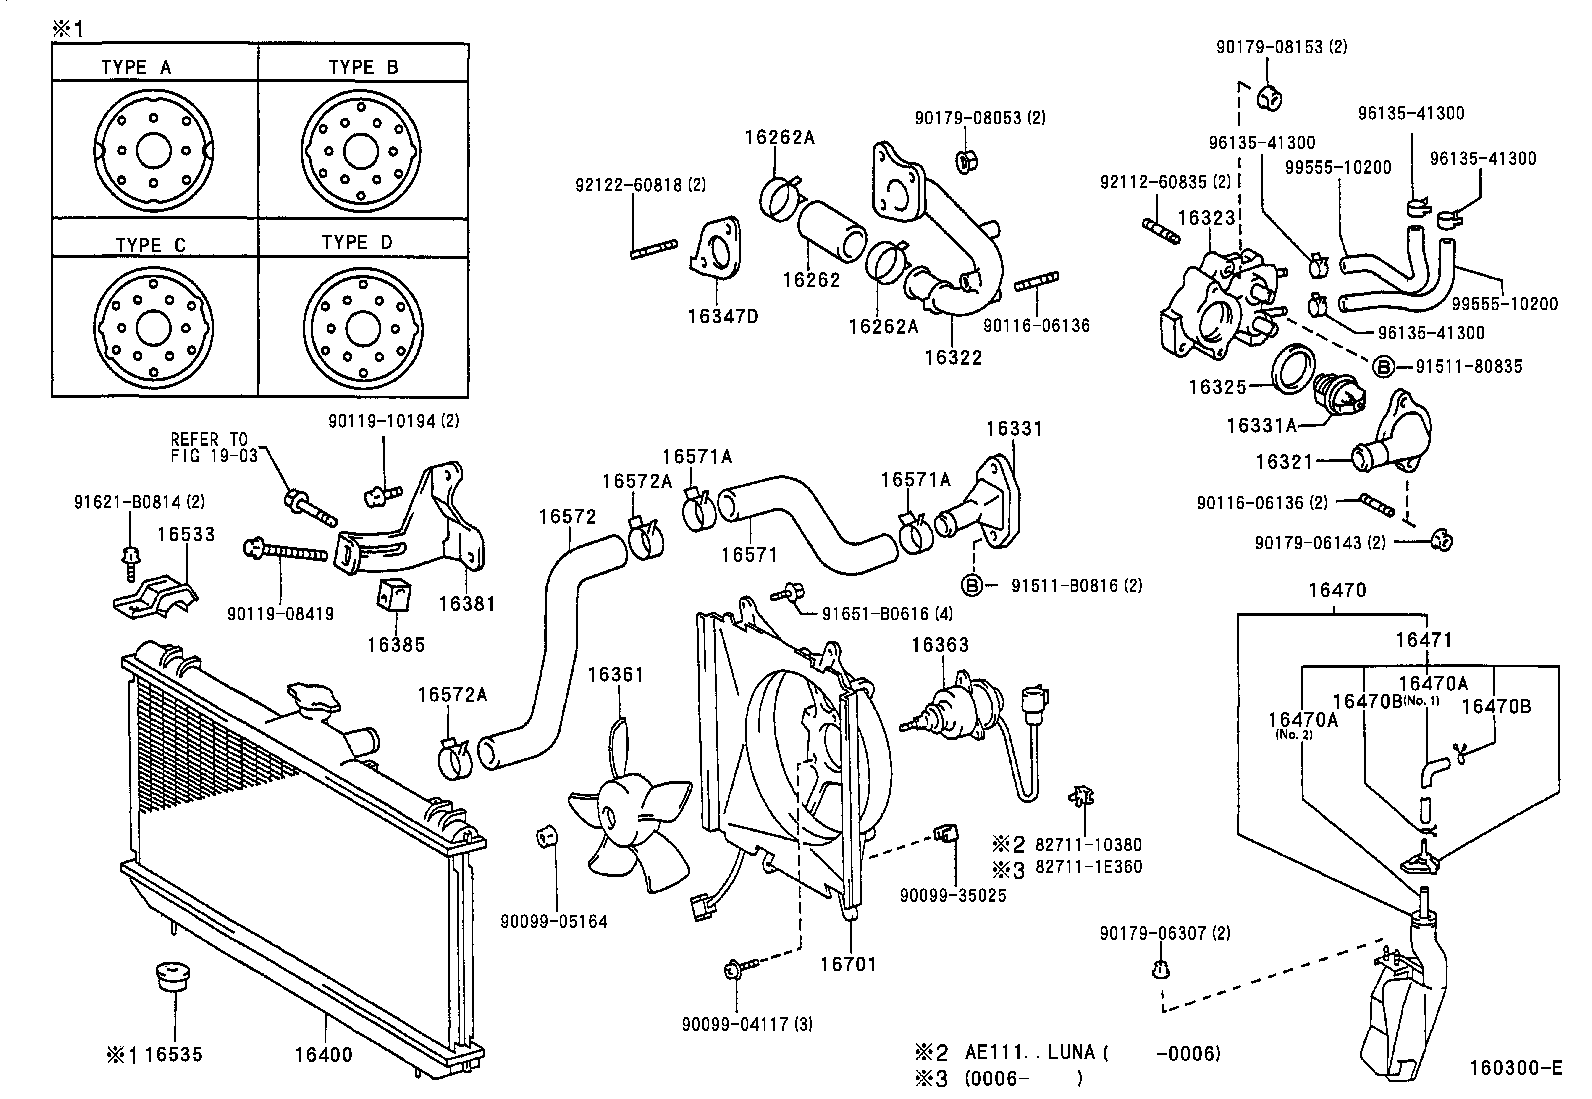 1990 Dodge Dynasty Wiring Diagram Schematic Auto Electrical Hayward Super Pump 220 Volt